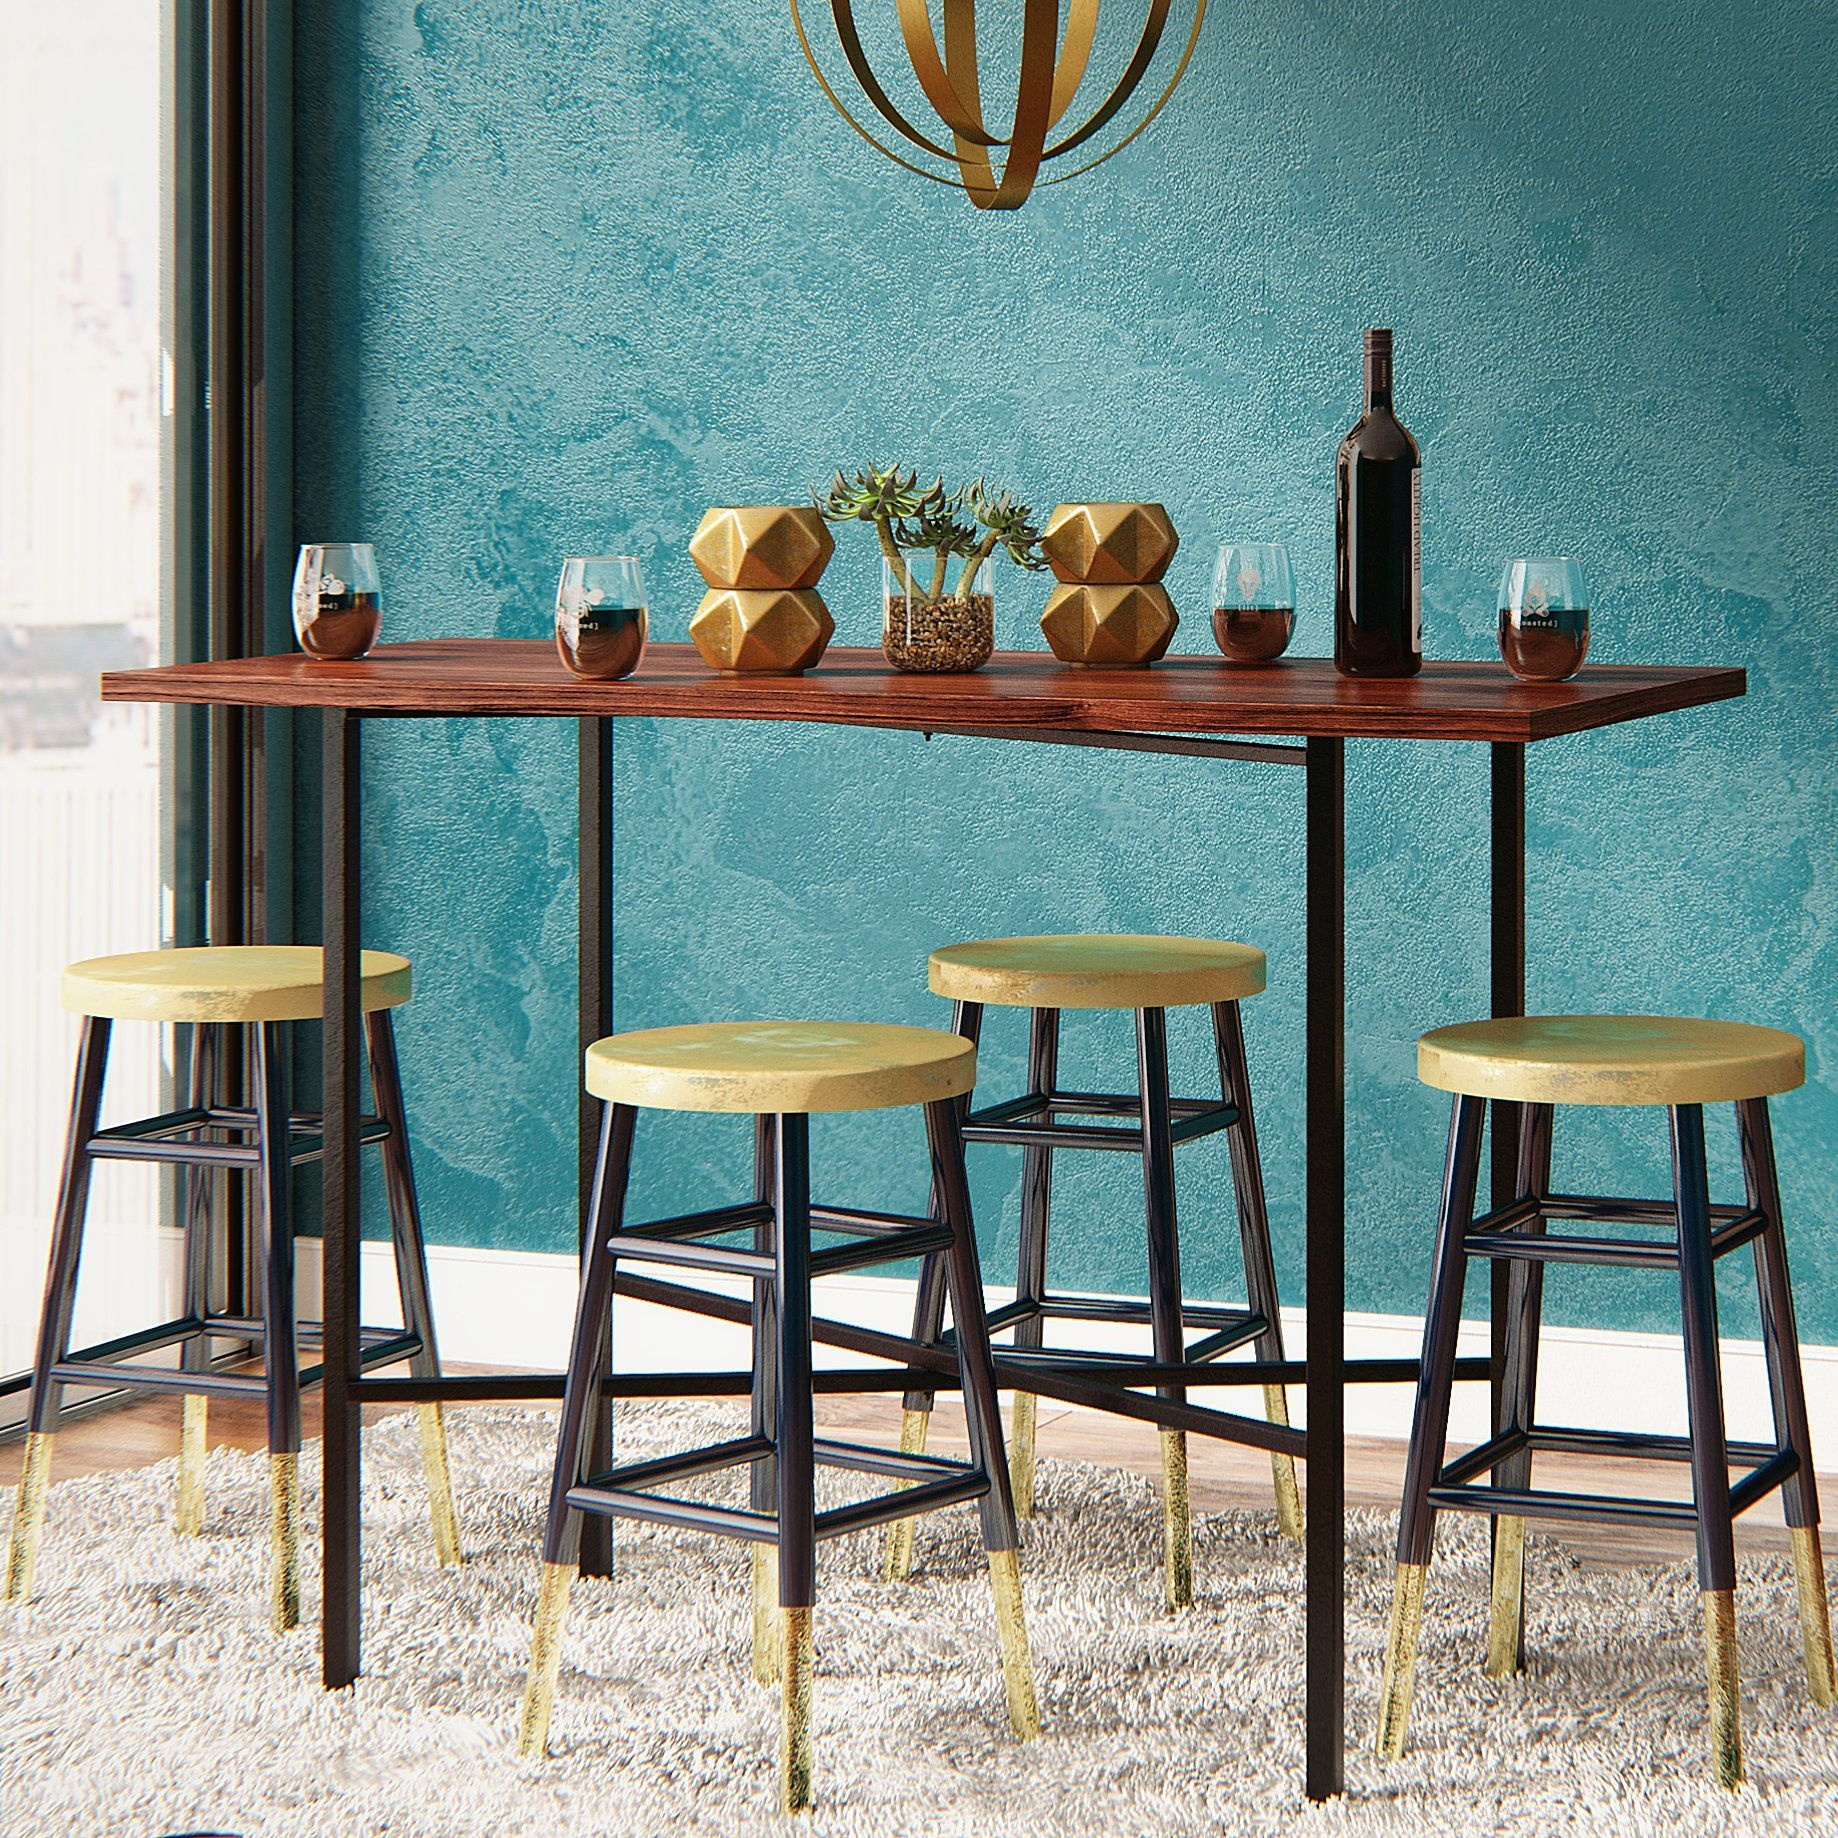 Xenia Counter Height Pub Table | Counter Height Tables | Pinterest ...